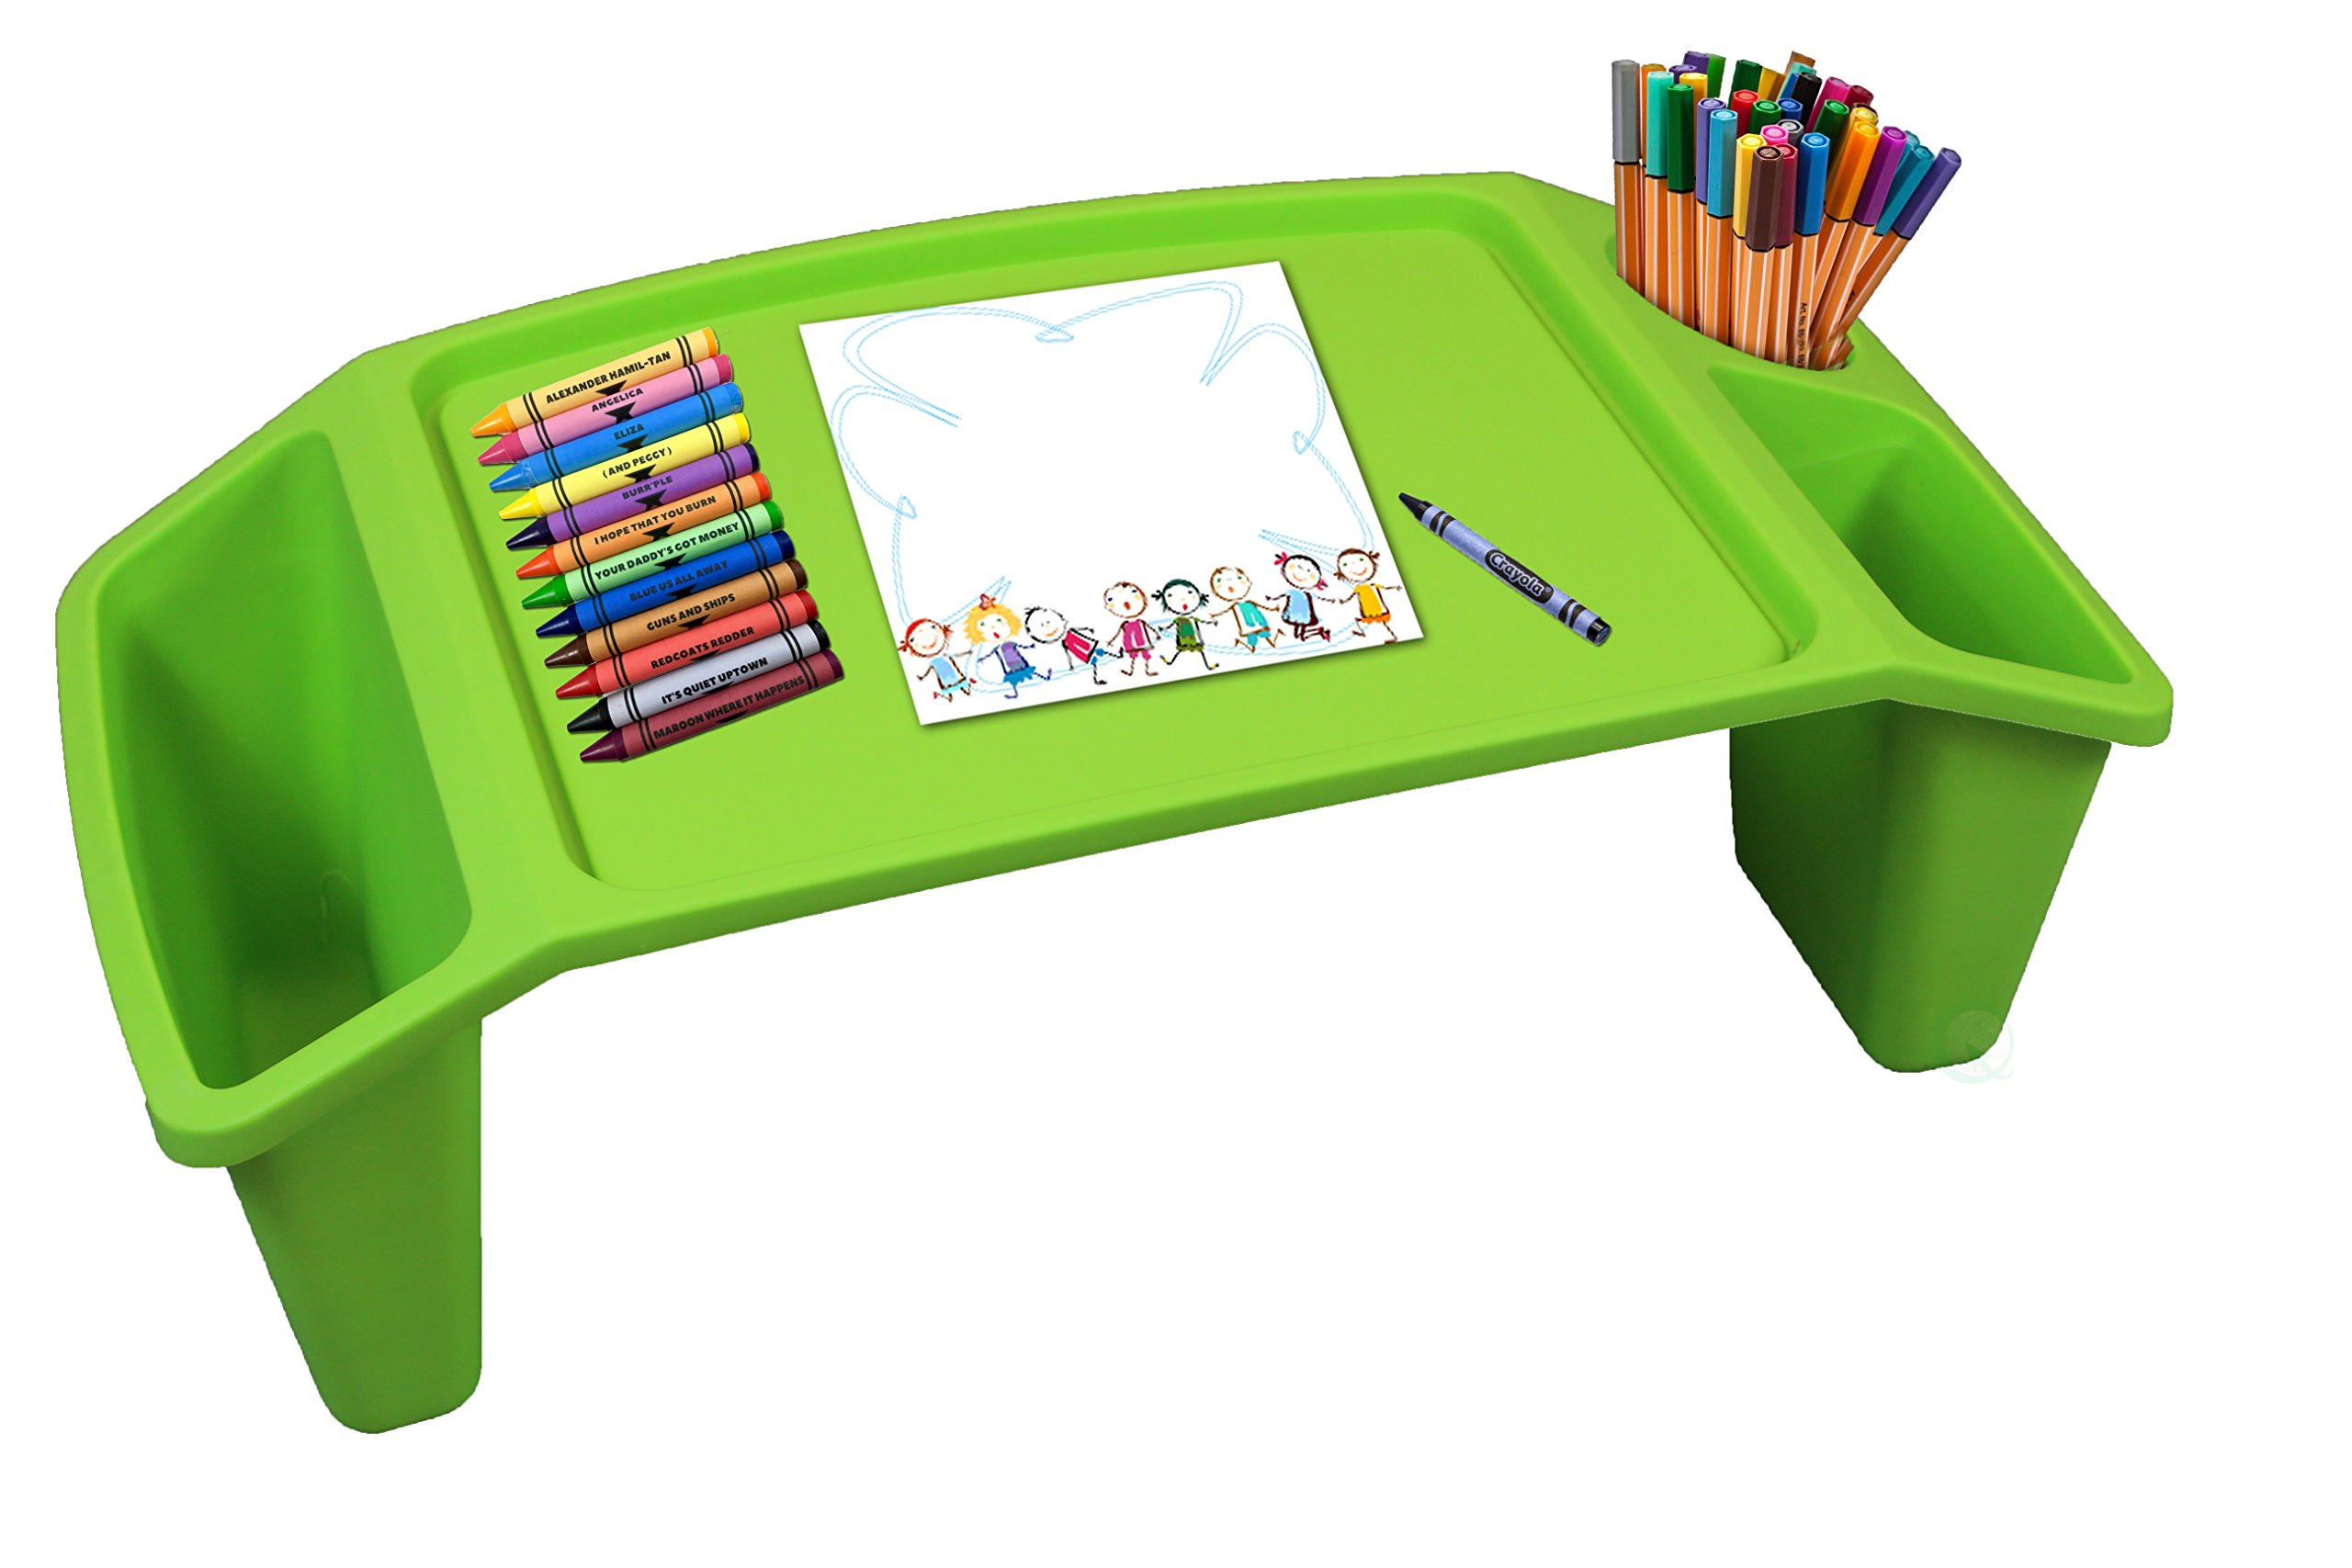 Baiscwise Kids Lap Desk Tray, Portable Activity Table (Set of 12, Green) by Basicwise